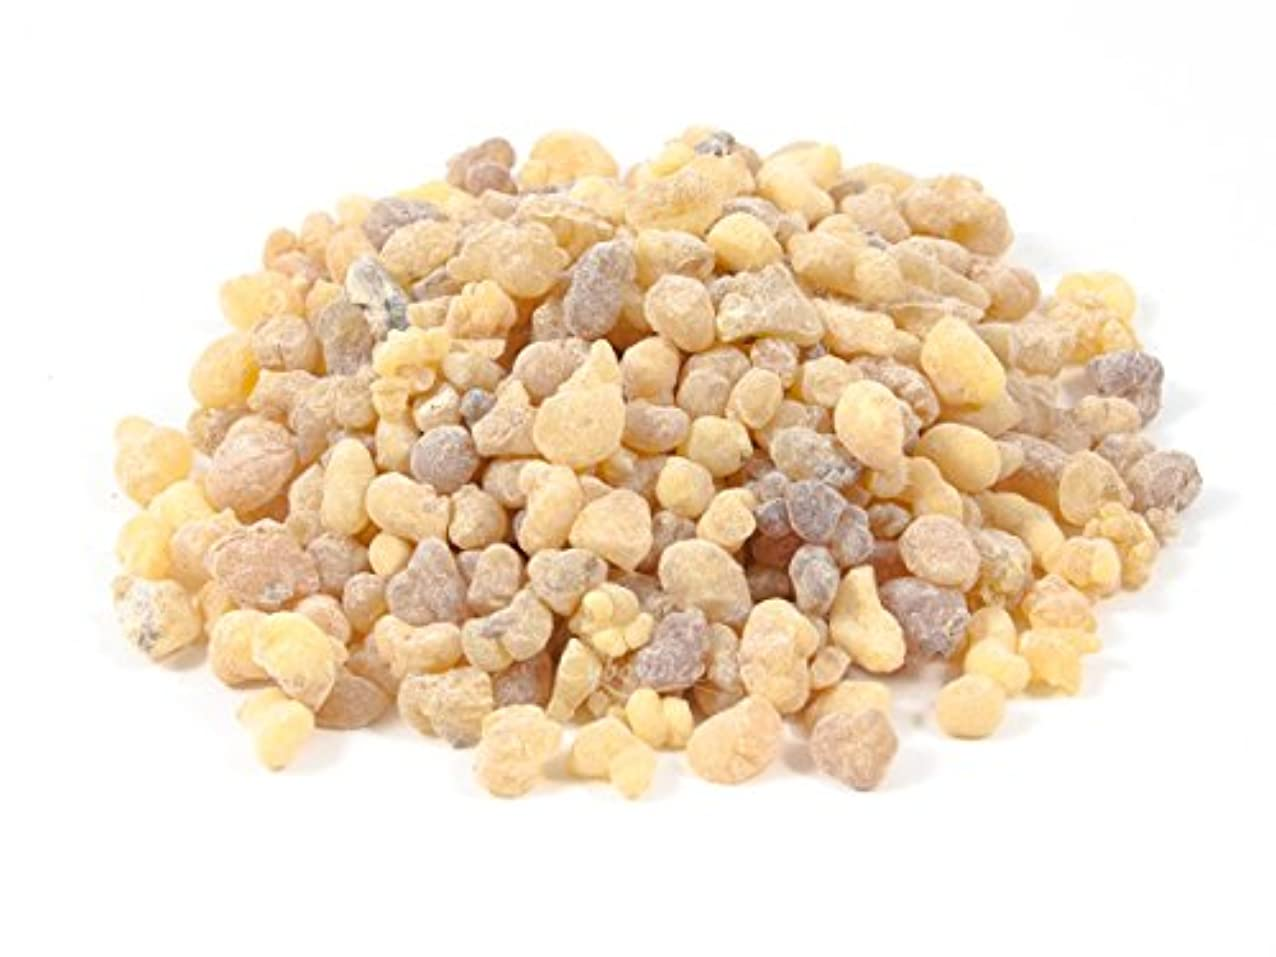 穿孔する平野金曜日Frankincense Resin 1 Pound by Frankincense Resin